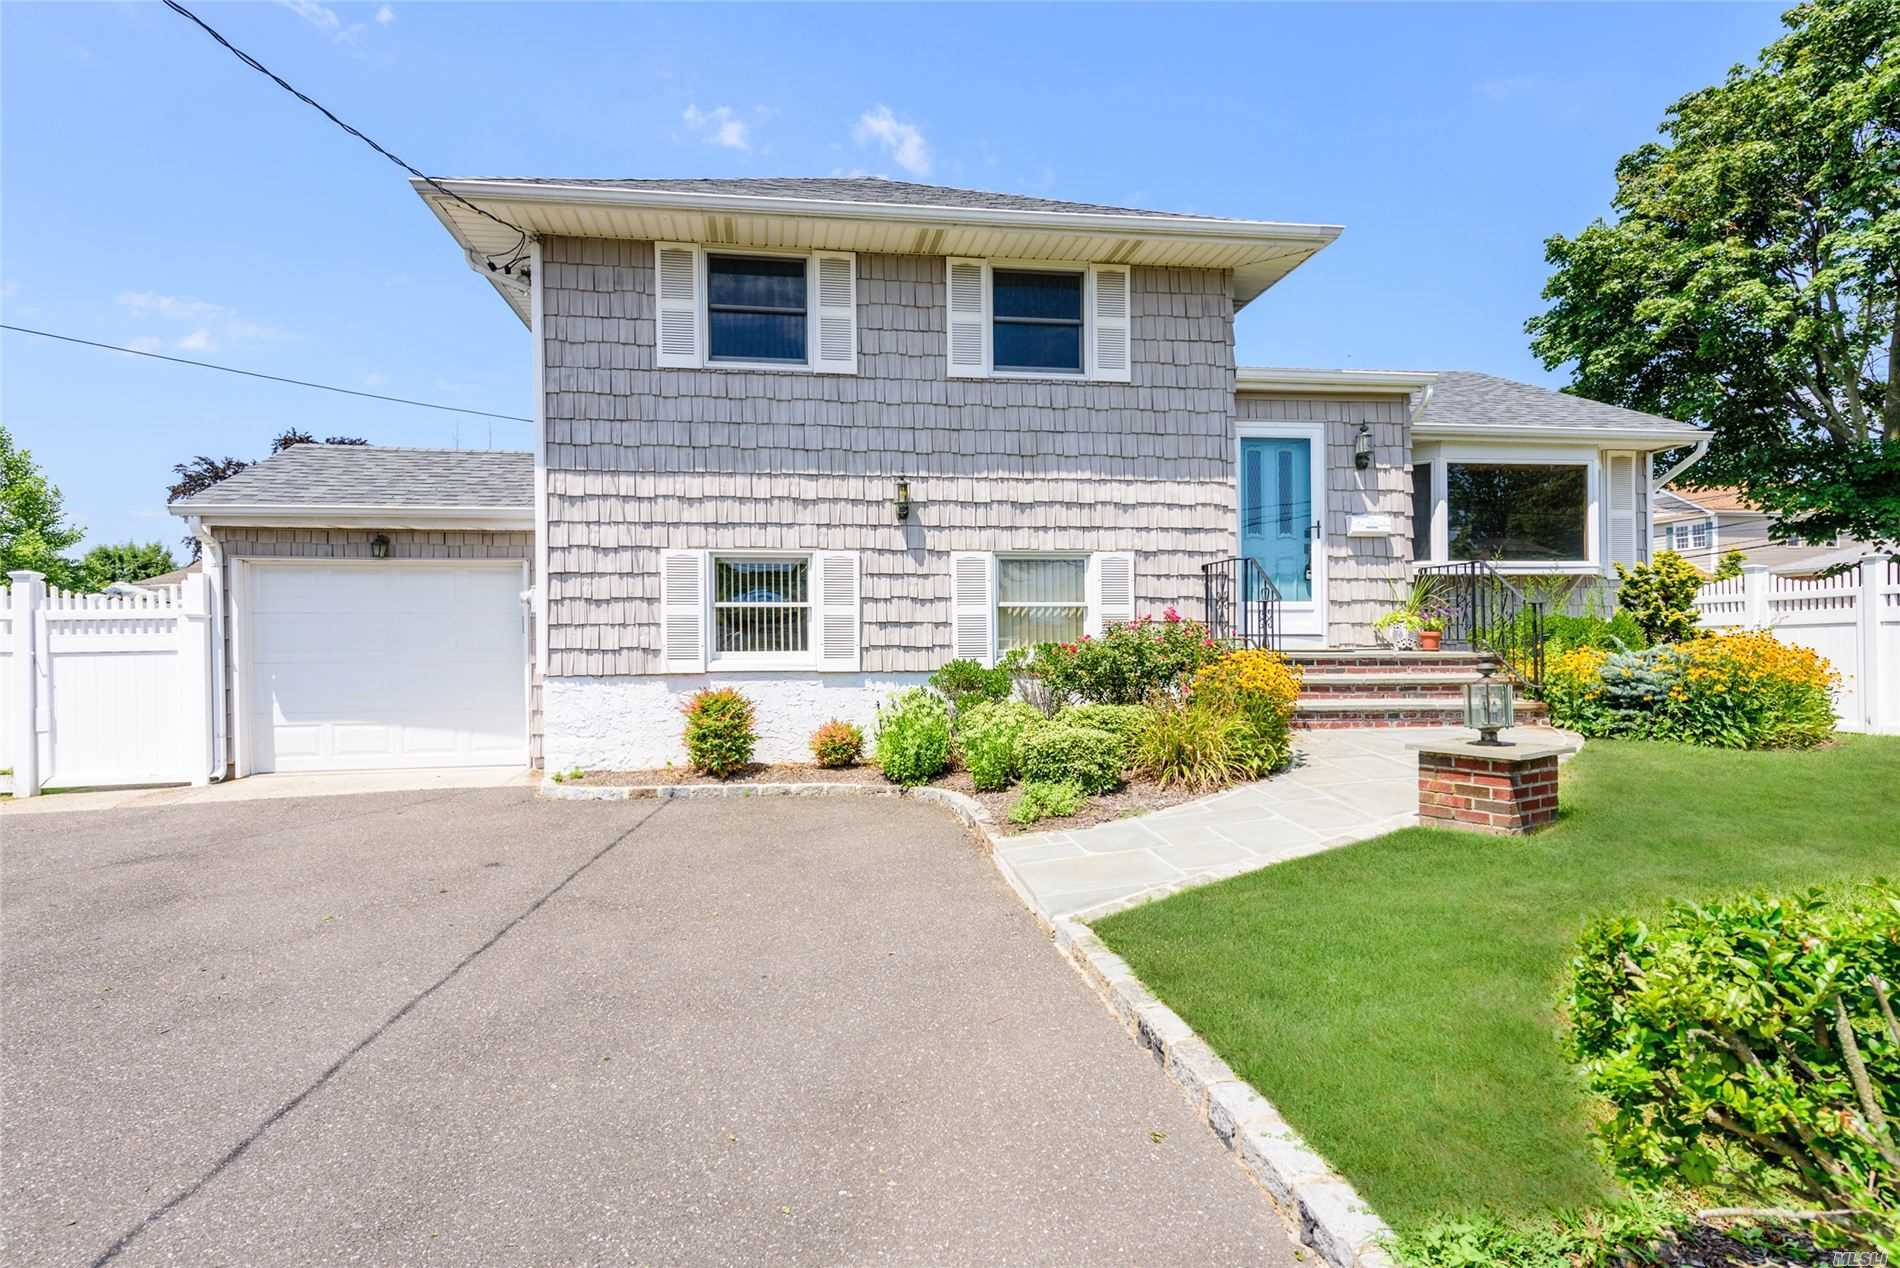 2685 Landing Ave - Bellmore, New York